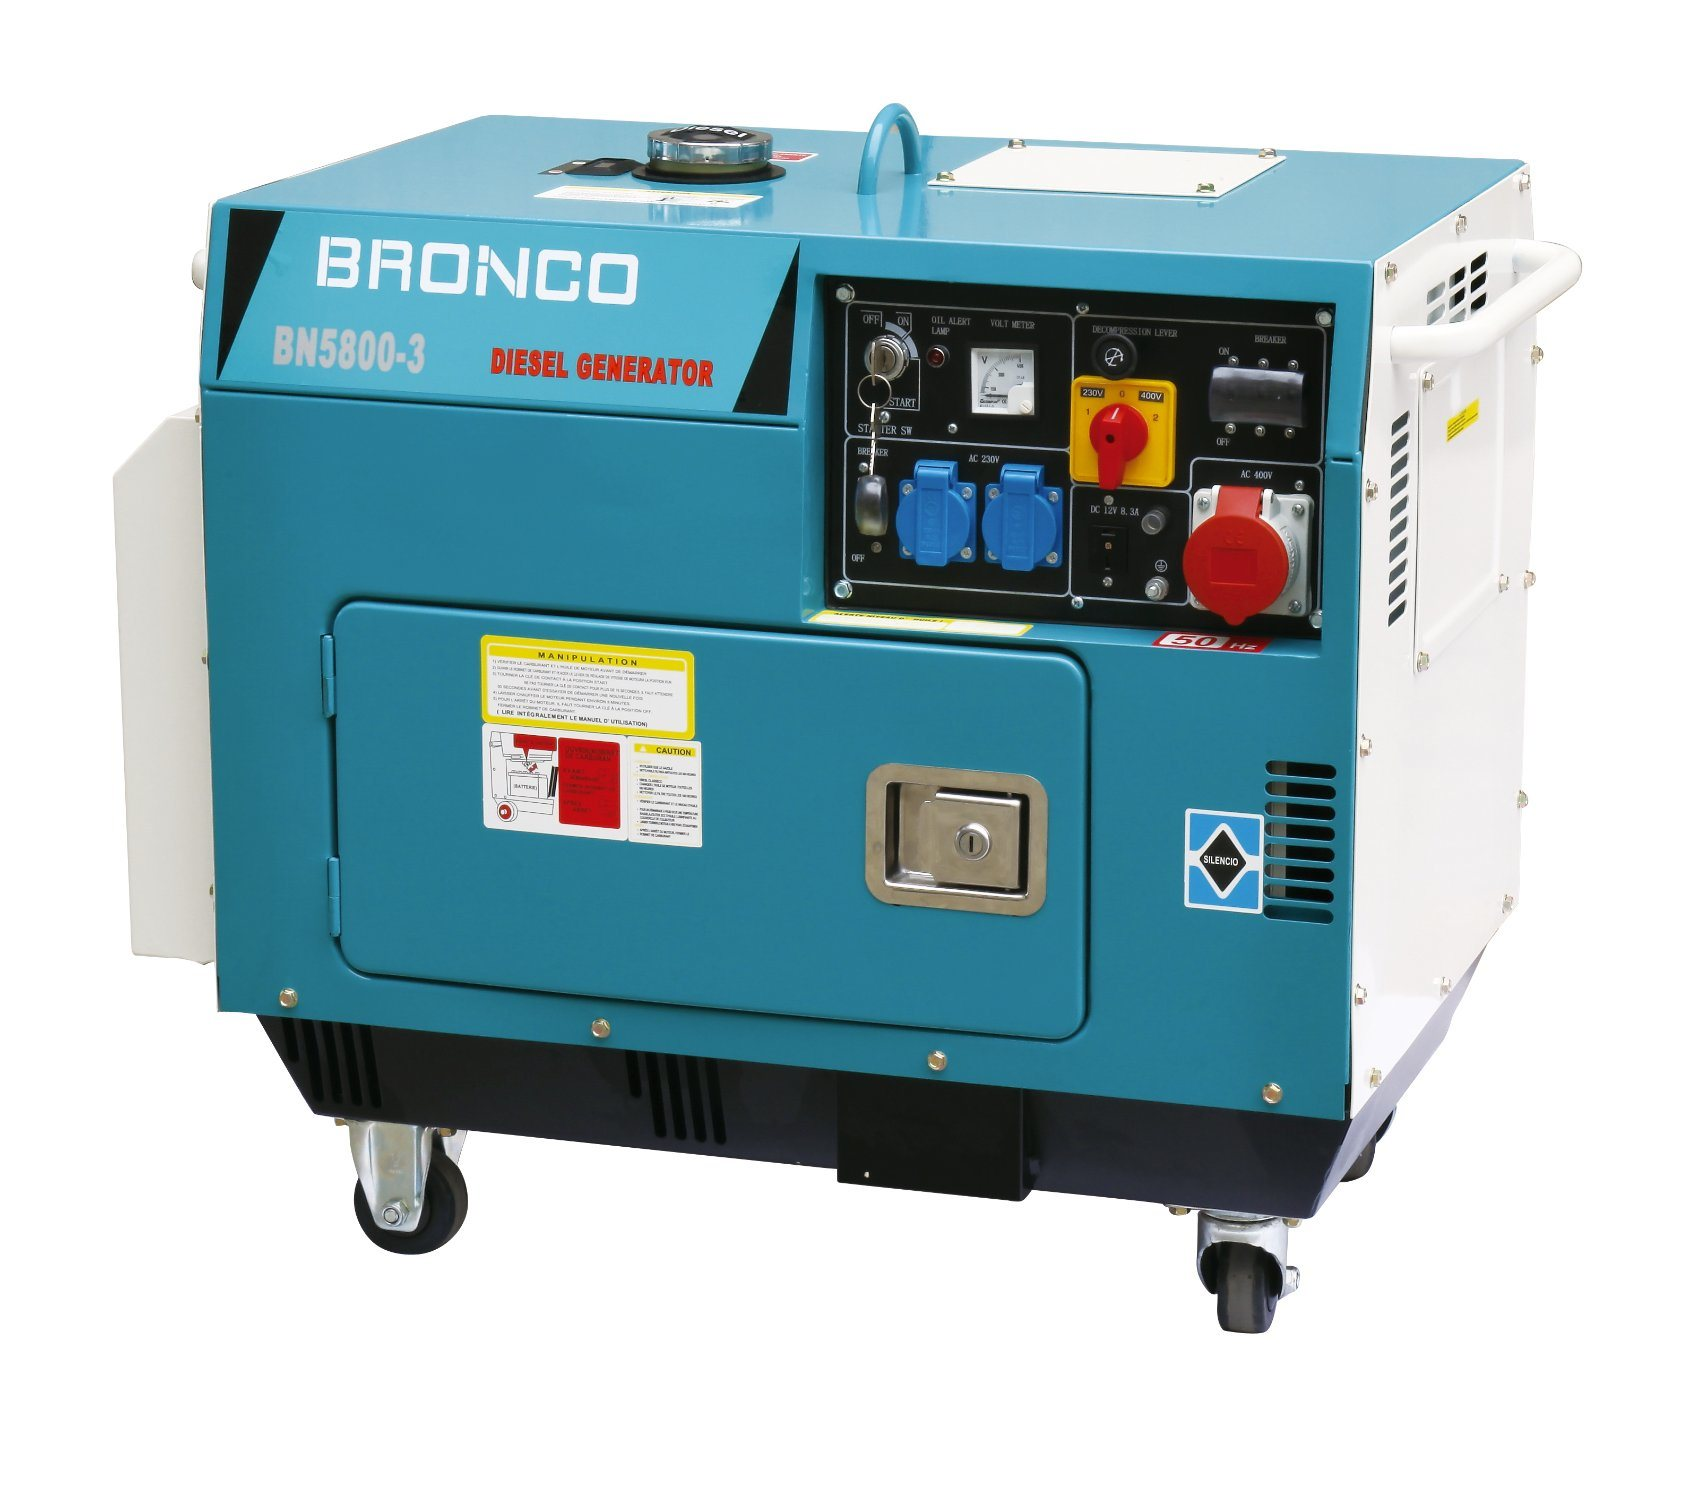 Silent Diesel Generator Bronco Zhejiang Electric Machinery